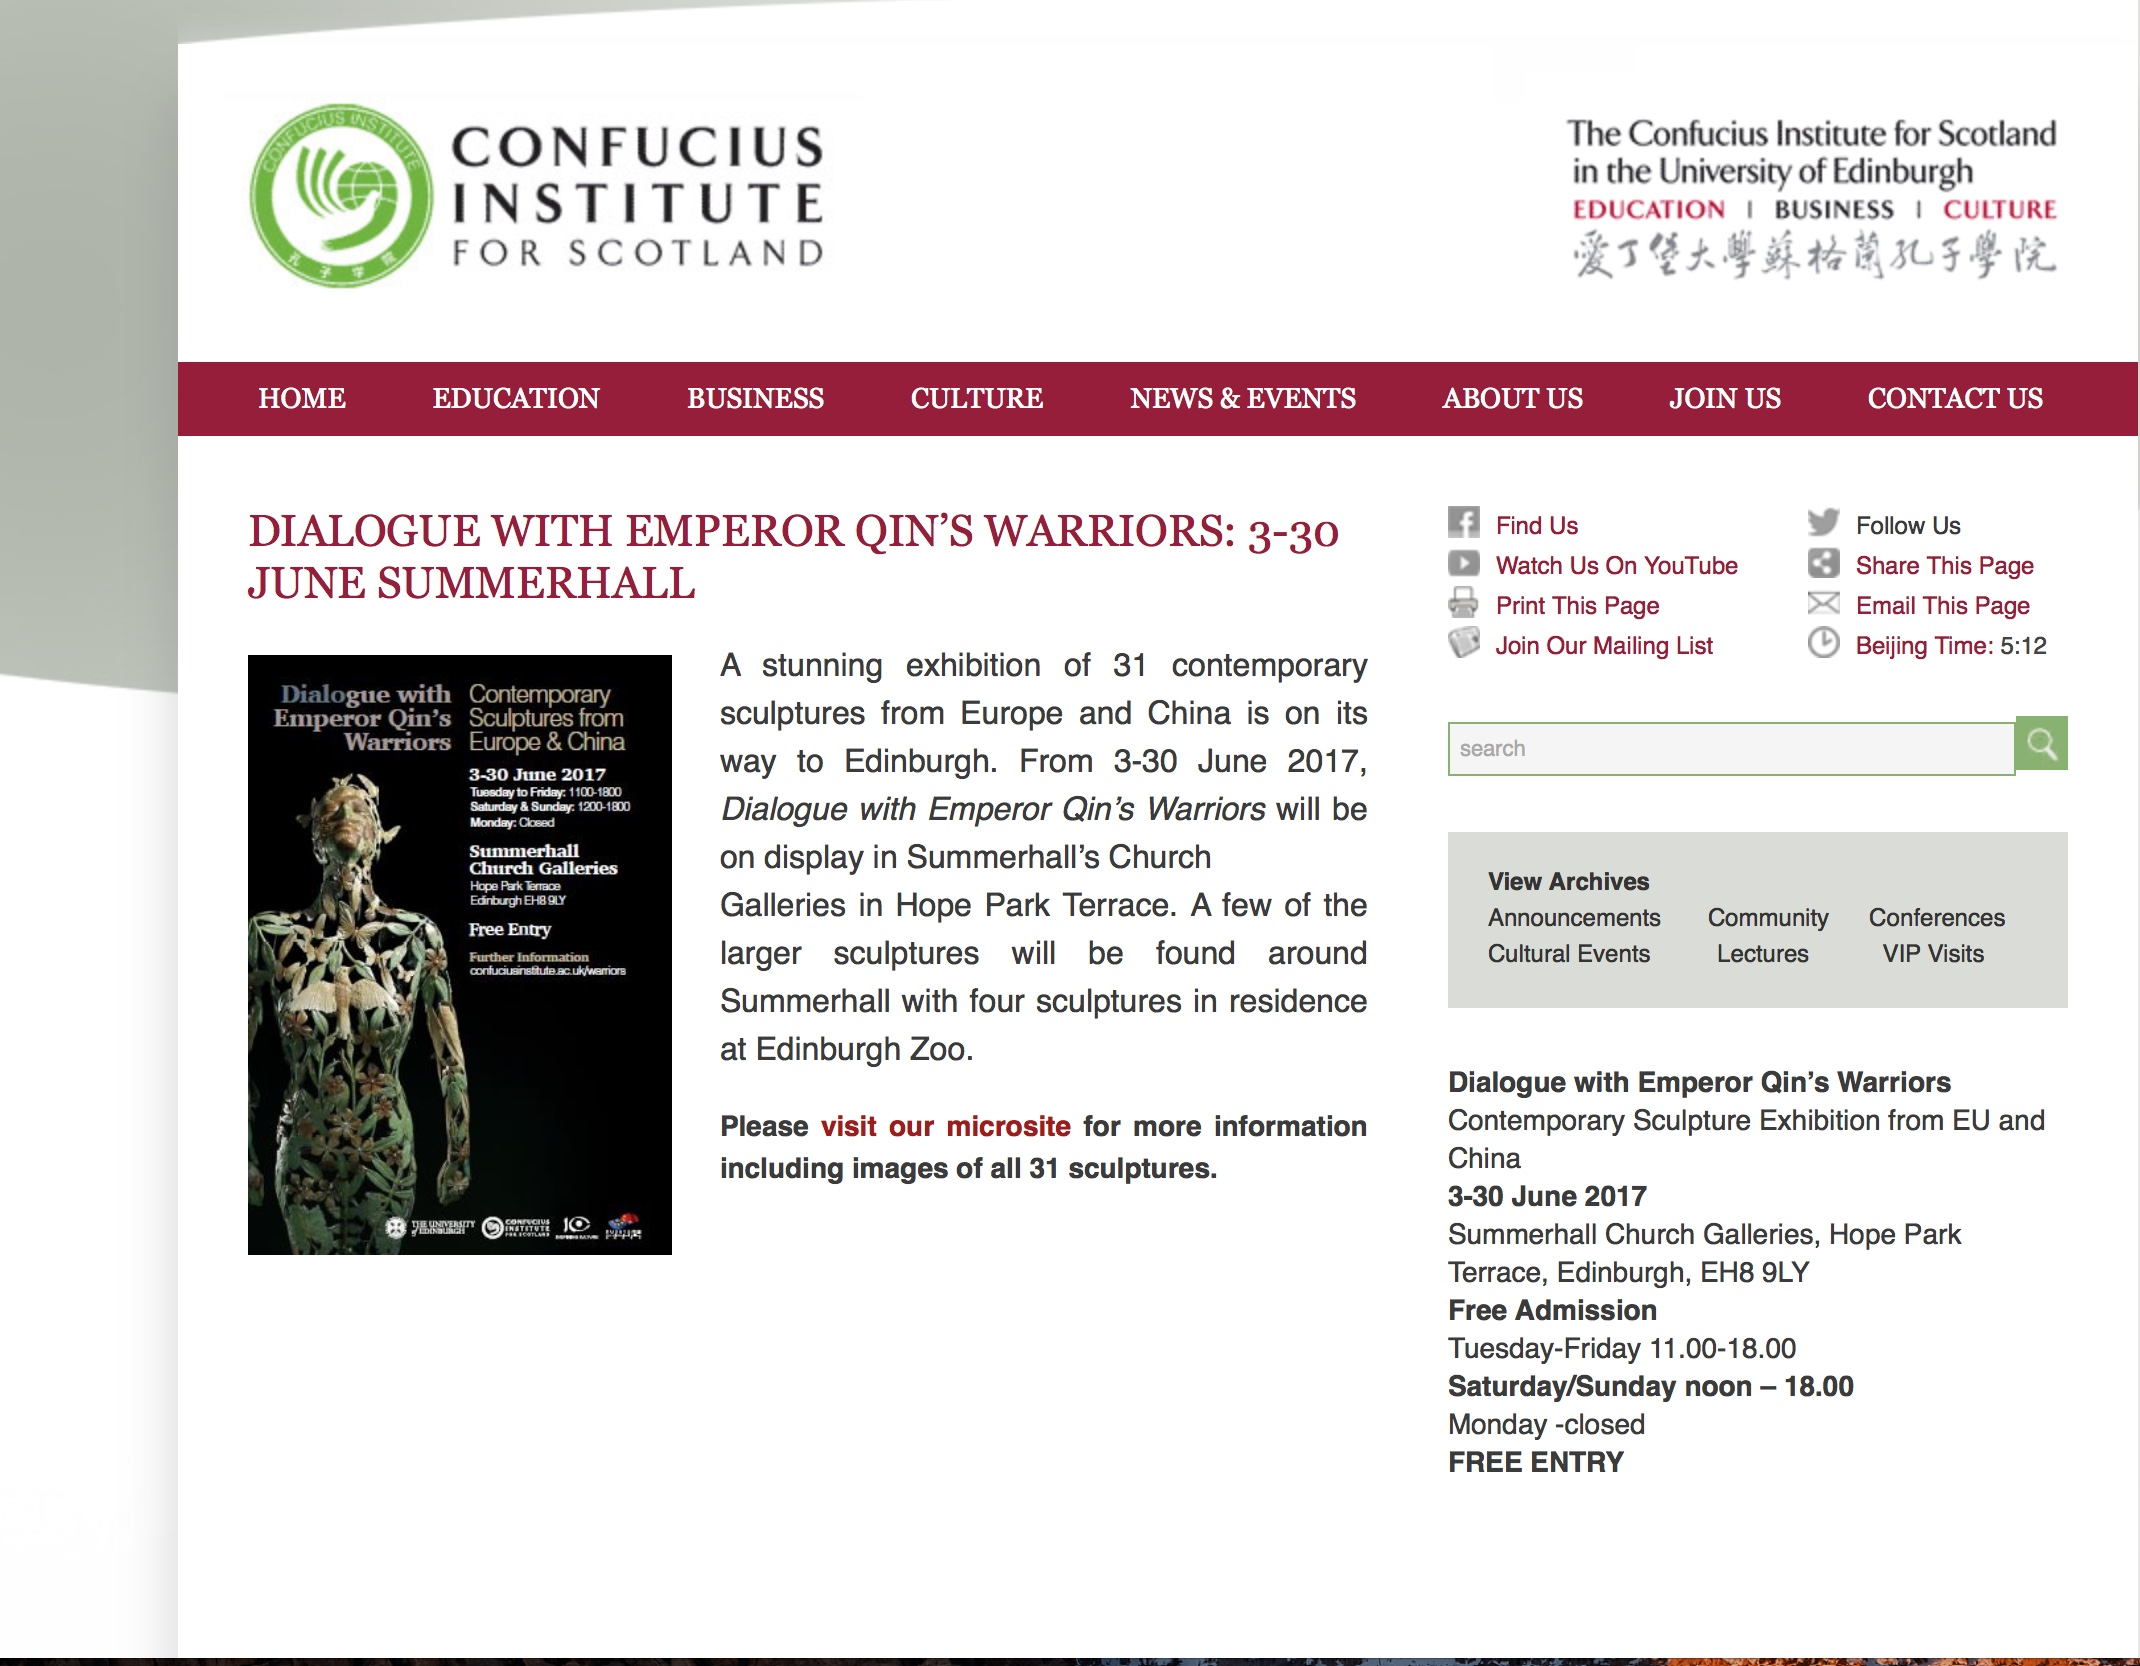 Above: The poster for the exhibition at the Confucius Institute, Scotland 2017